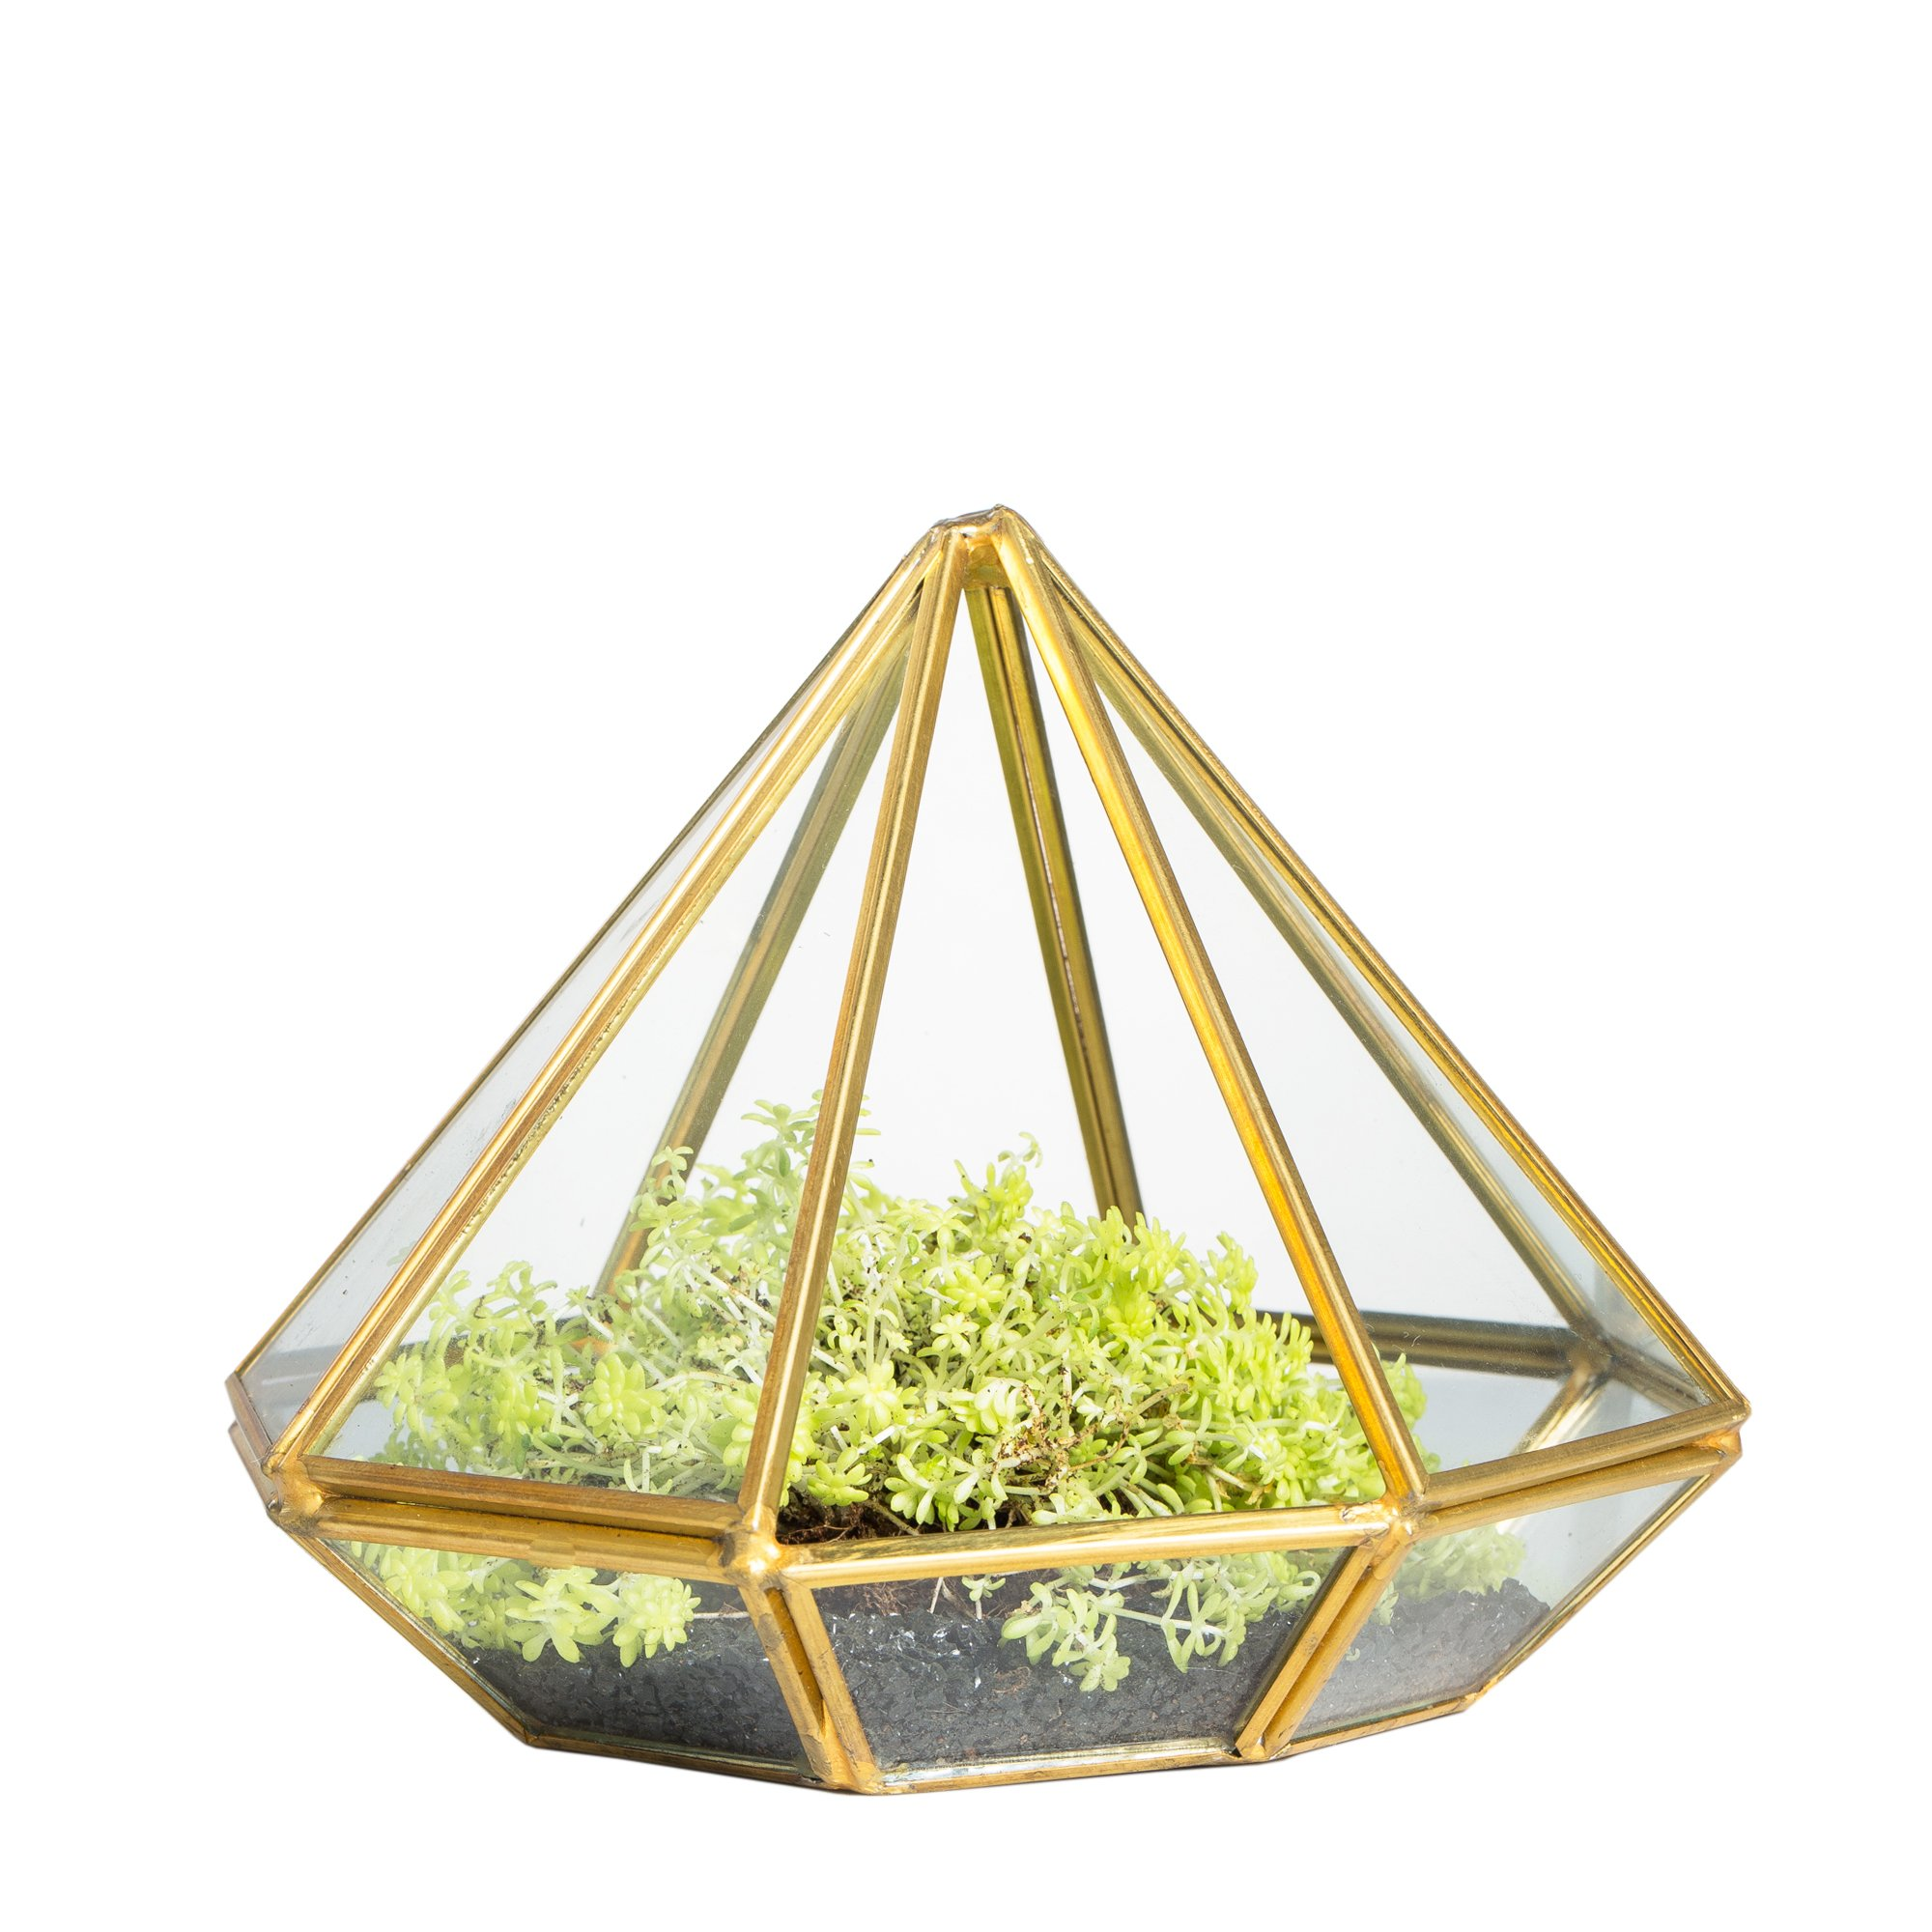 NCYP Handmade Gold Open Glass Geometric Terrarium Brass Diamond Succulent Fern Moss Plant Display Container Balcony Small Planter Indoor Centerpiece for Coffee Table Desk Top Box Without Door by NCYP